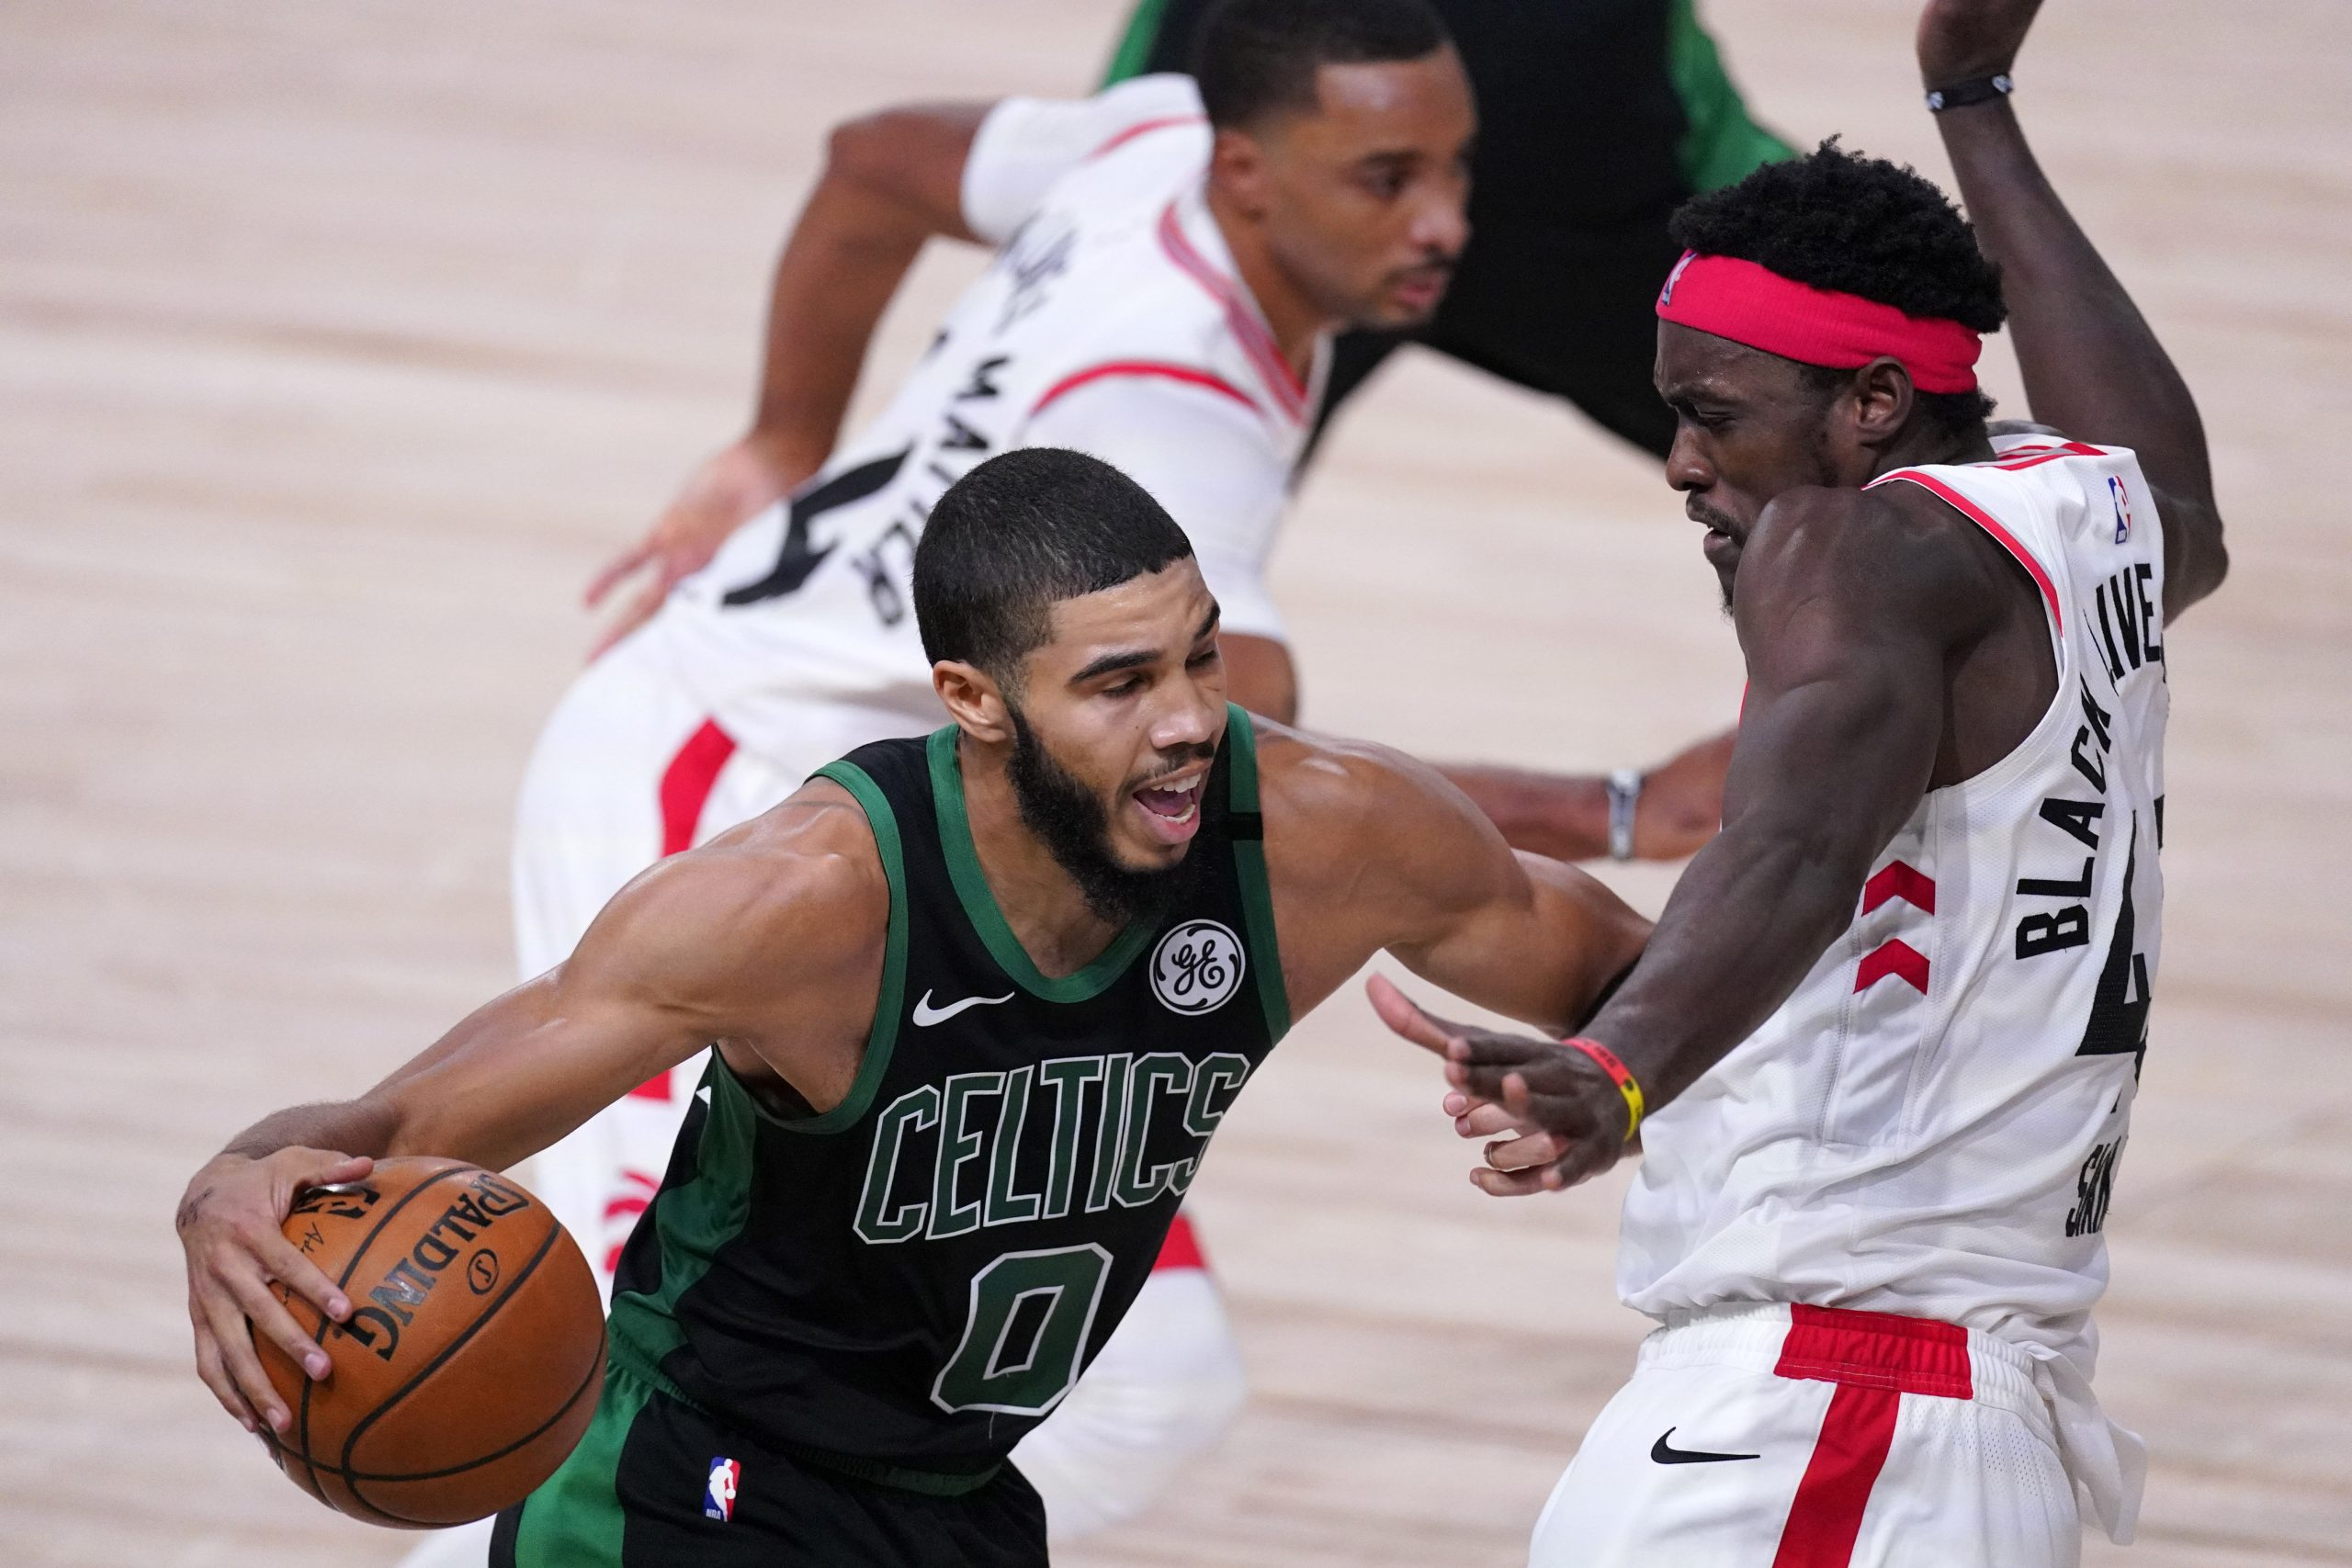 Raptors Eliminated From Nba Playoffs With Game 7 Loss To Celtics Citynews Toronto